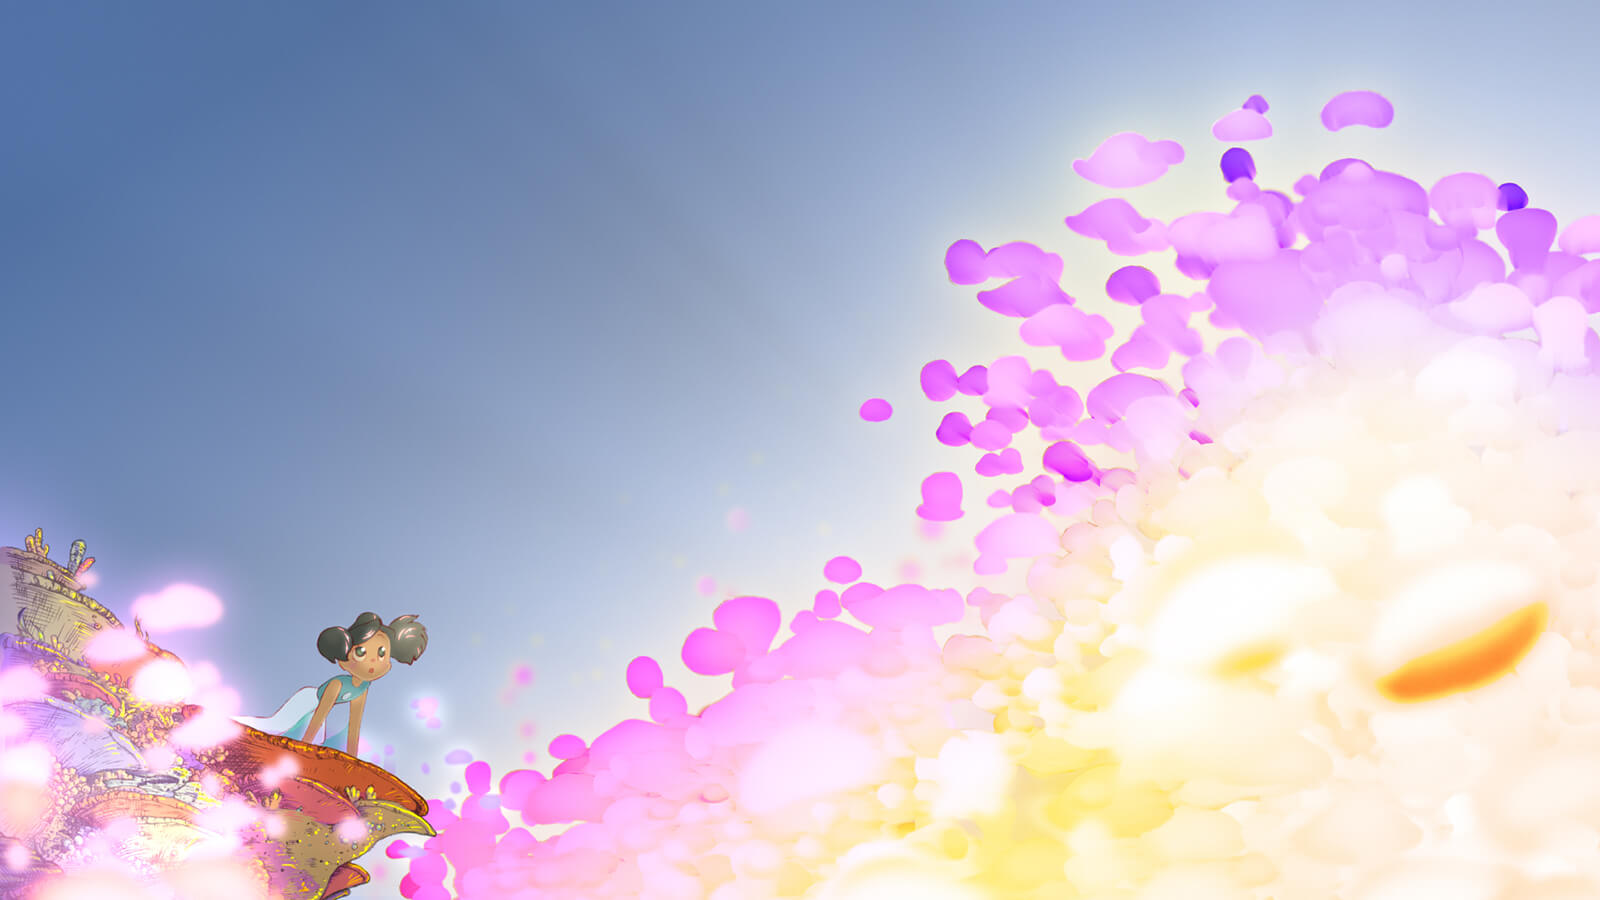 A kneeling girl with black hair stares in awe at a brilliant flash of pink and white light coming from the foreground